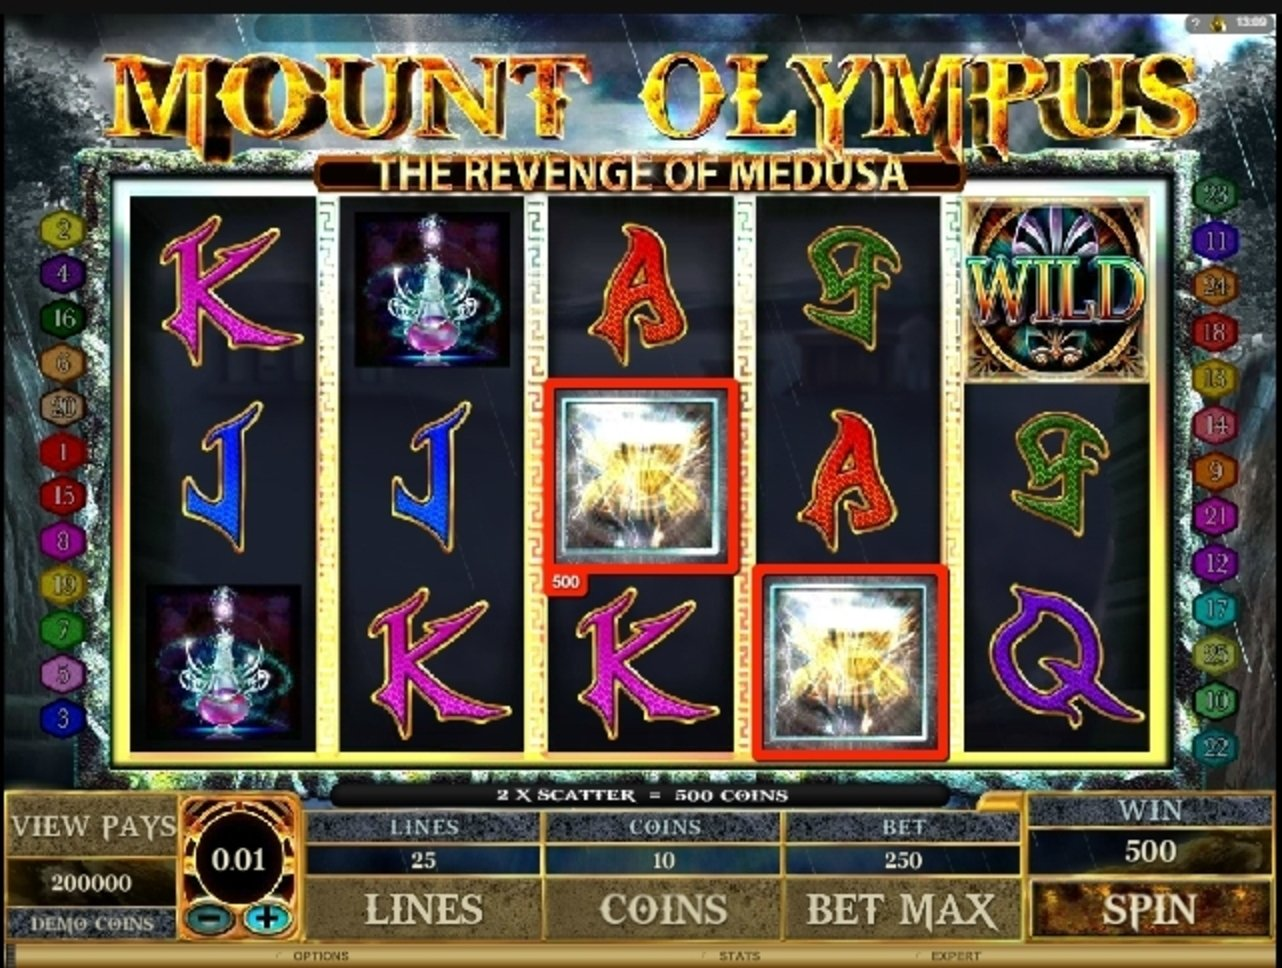 Win Money in Mount Olympus Free Slot Game by Microgaming